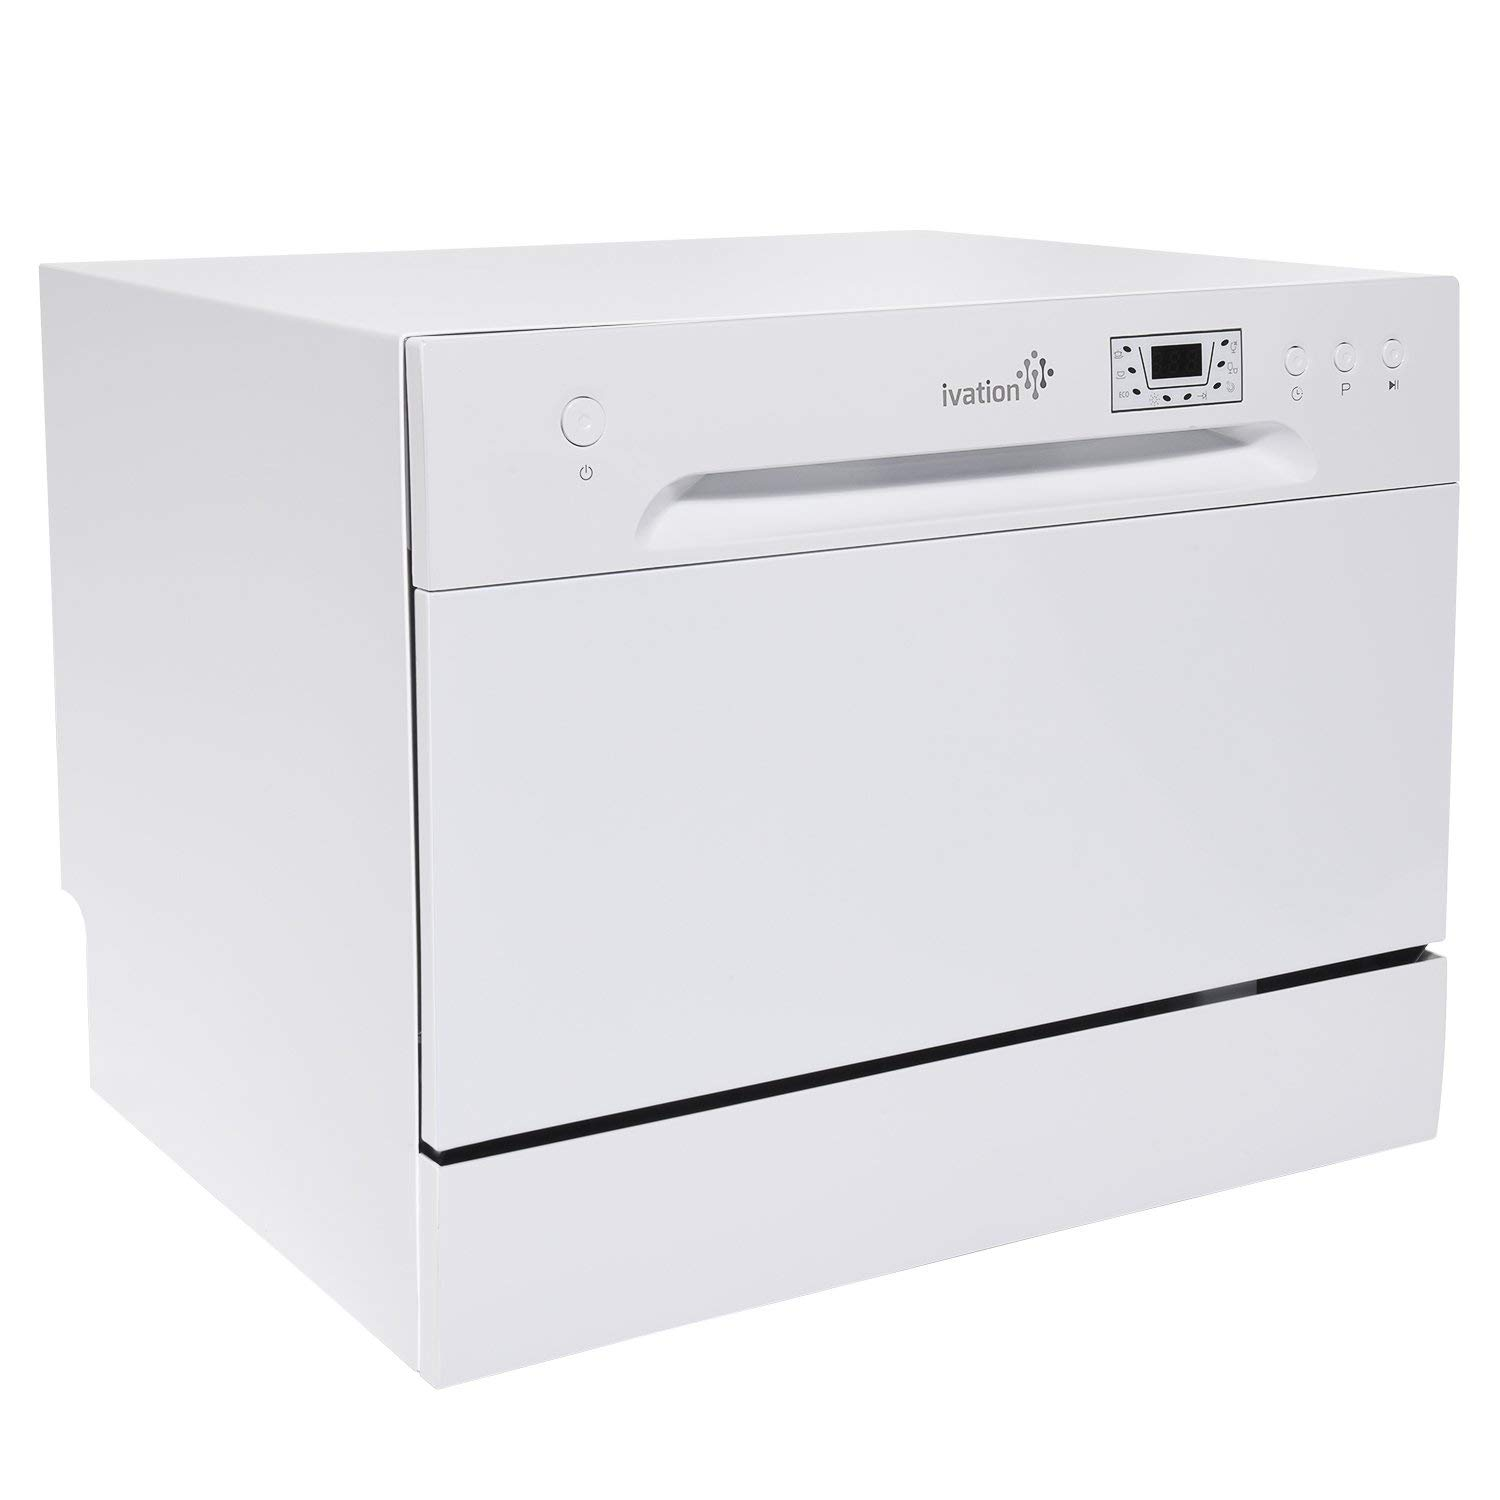 6 Place Setting Capacity Renewed Ivation Portable Dishwasher Countertop Small Compact Dishwasher for Apartment RV Office /& Other Small Kitchens Condo White